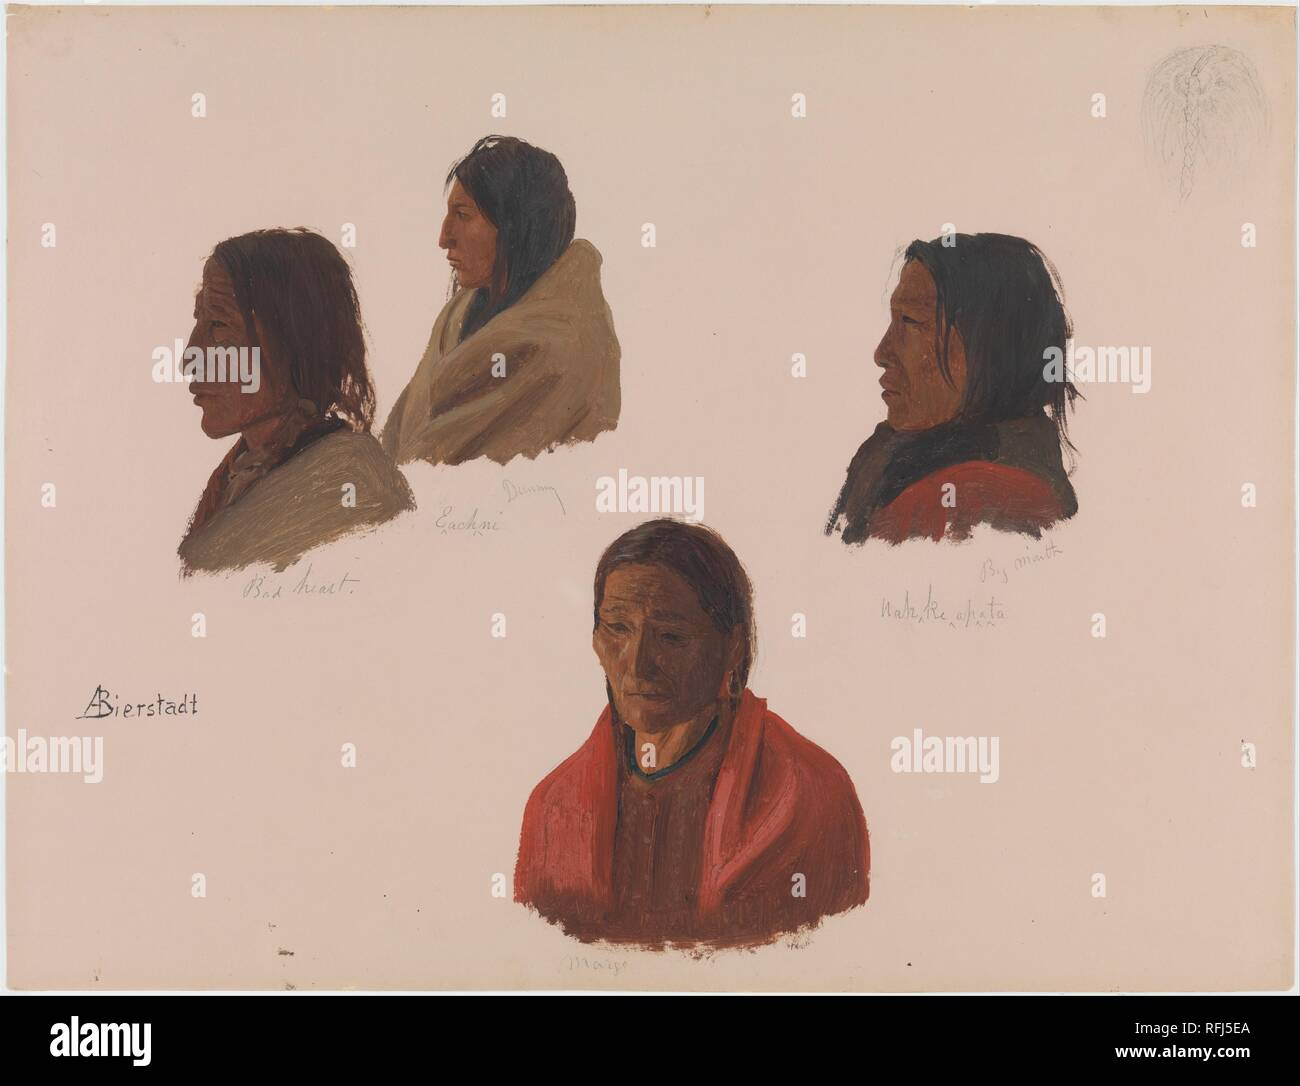 Studies of Indian Chiefs Made at Fort Laramie. Artist: Albert Bierstadt (American, Solingen 1830-1902 New York). Dimensions: 13 x 16 7/8 in. (33 x 42.9 cm). Date: ca. 1859.  Bierstadt arrived at Fort Laramie, in present-day Wyoming, as a member of the expedition to the western portion of the Nebraska Territory with Colonel Frederic W. Lander in June 1859, during a time of tense relations between the Western Sioux (Teton) and the United States government. Bierstadt made vivid field sketches of the Indians he encountered there, including this powerful depiction of the heads of four chiefs. The a Stock Photo